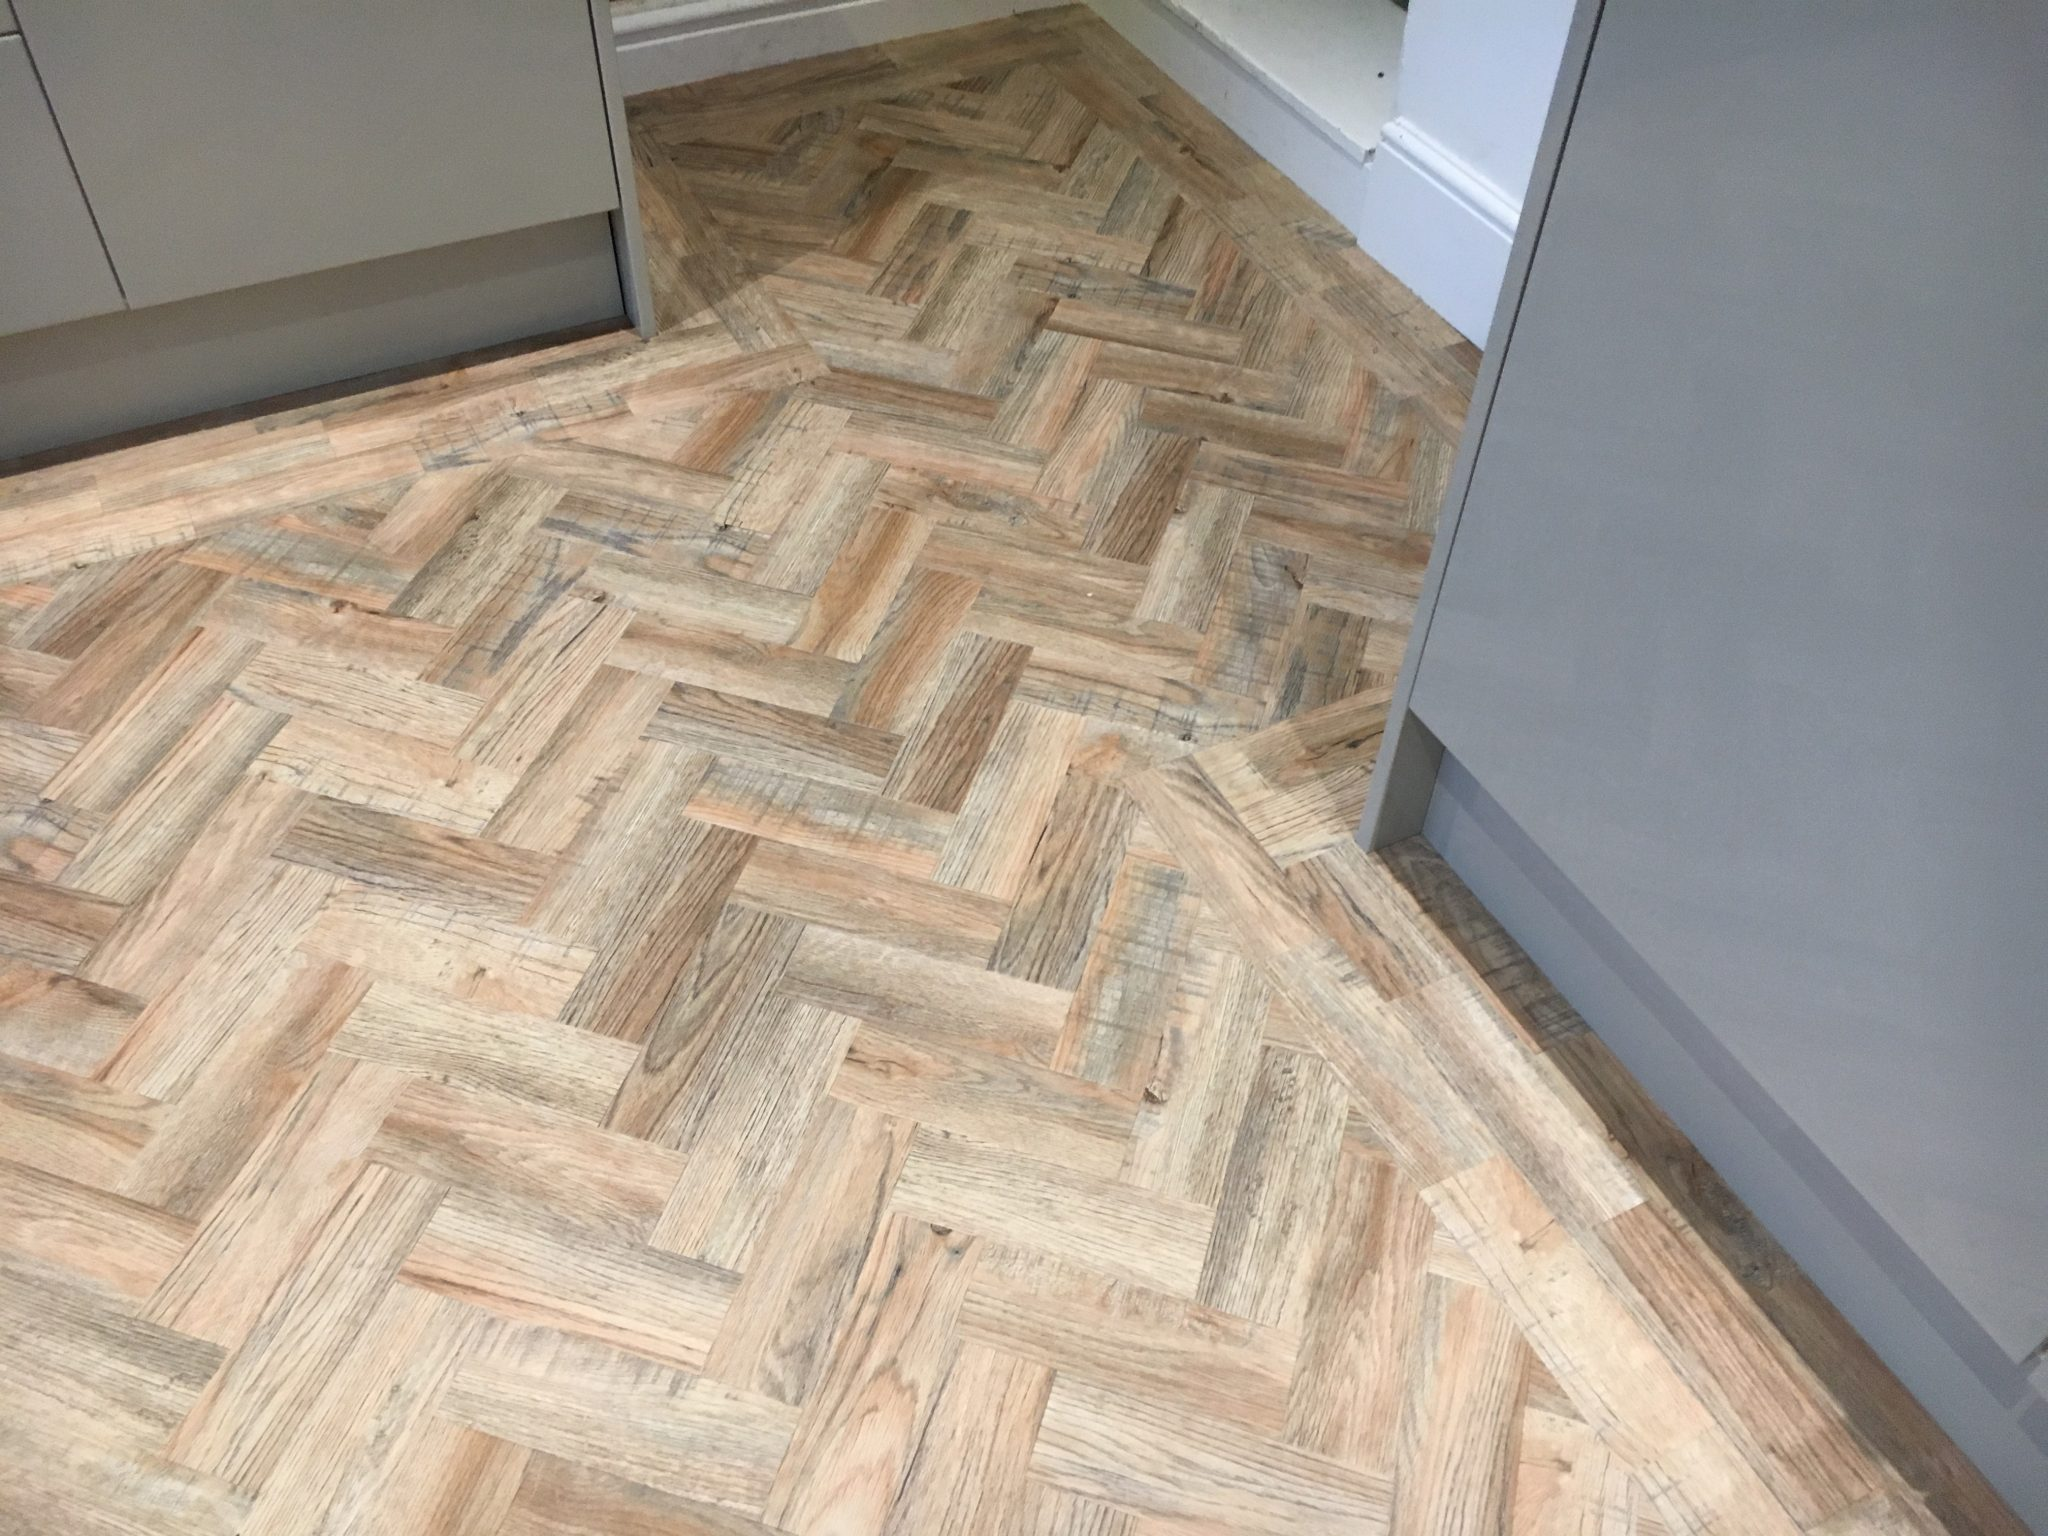 Polyflor Camaro Lvt Flooring In Leicester Dcs Flooring Ltd